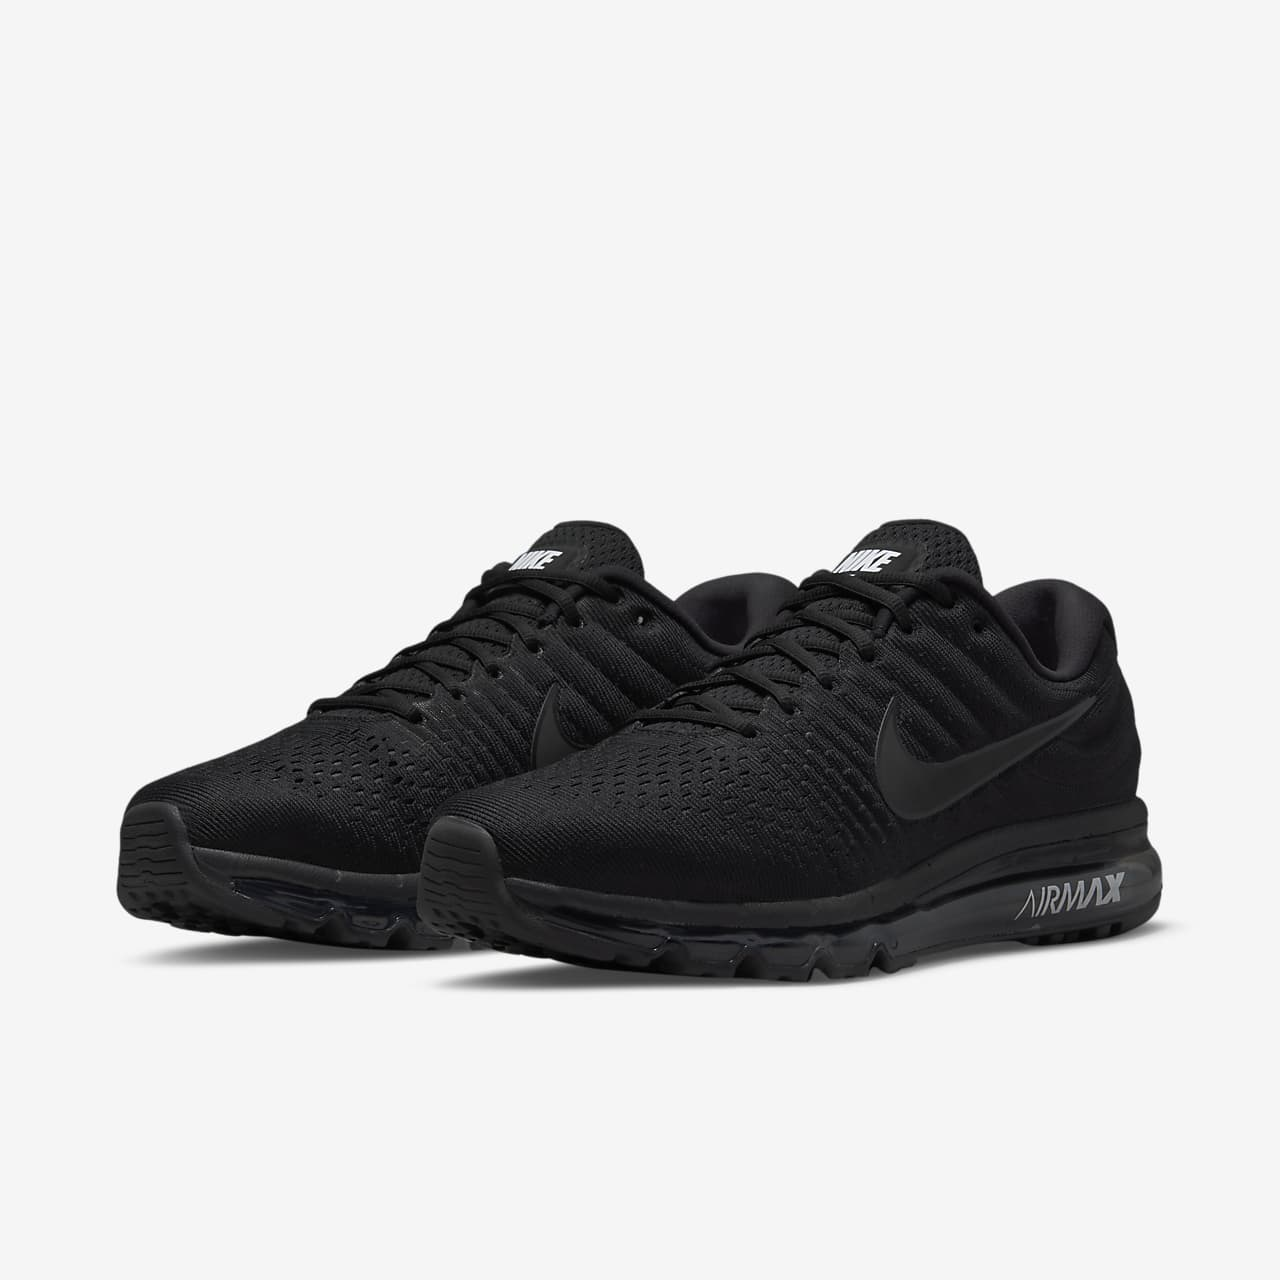 new nike air max 2017 mens' running shoes nz